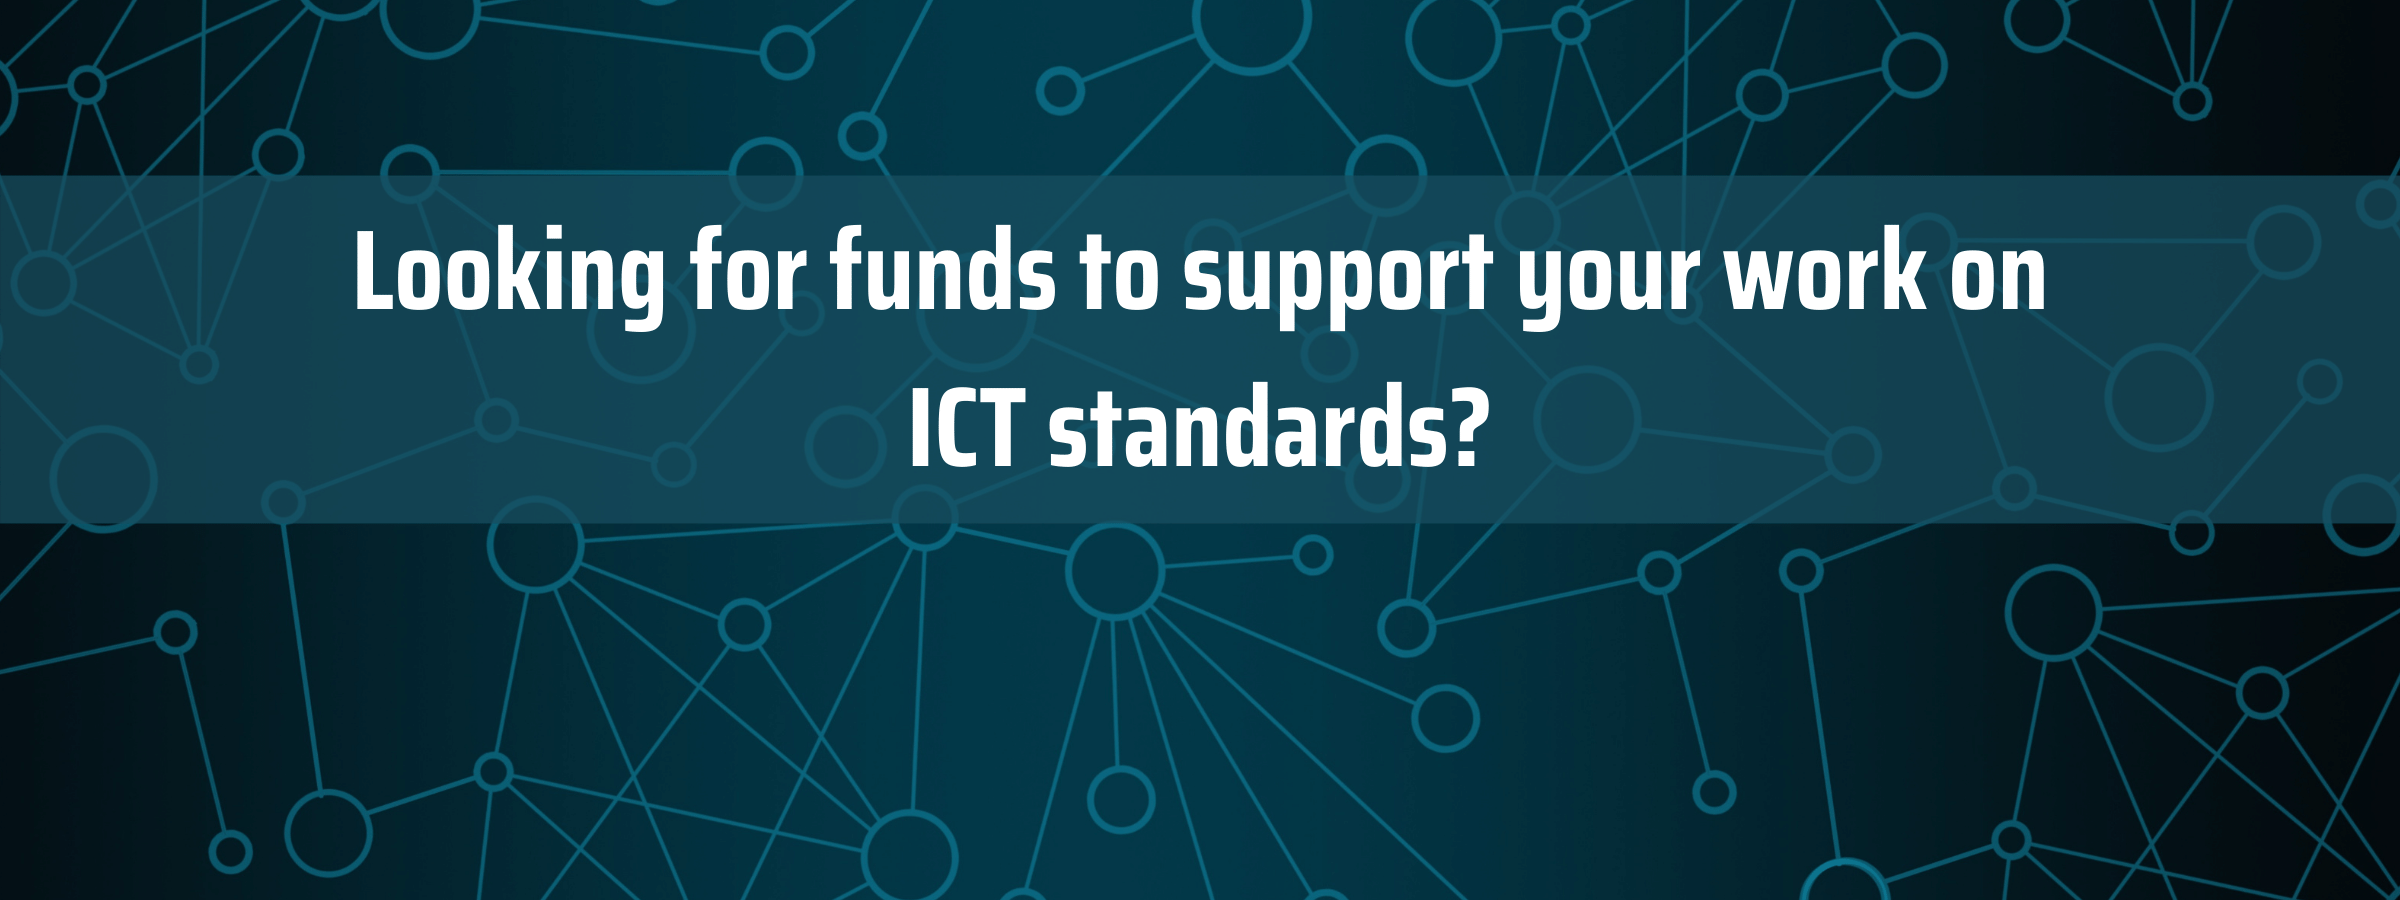 Looking for funds to support your work on ICT standards?